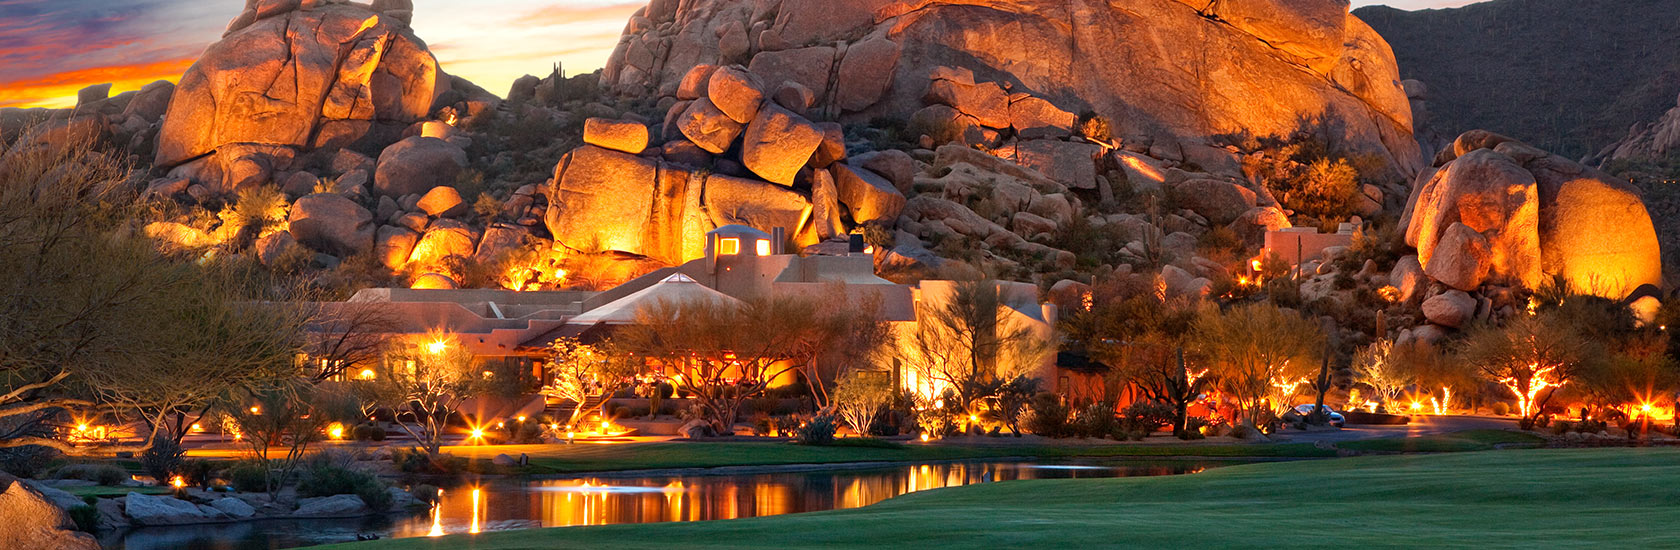 The Boulders at sunset.